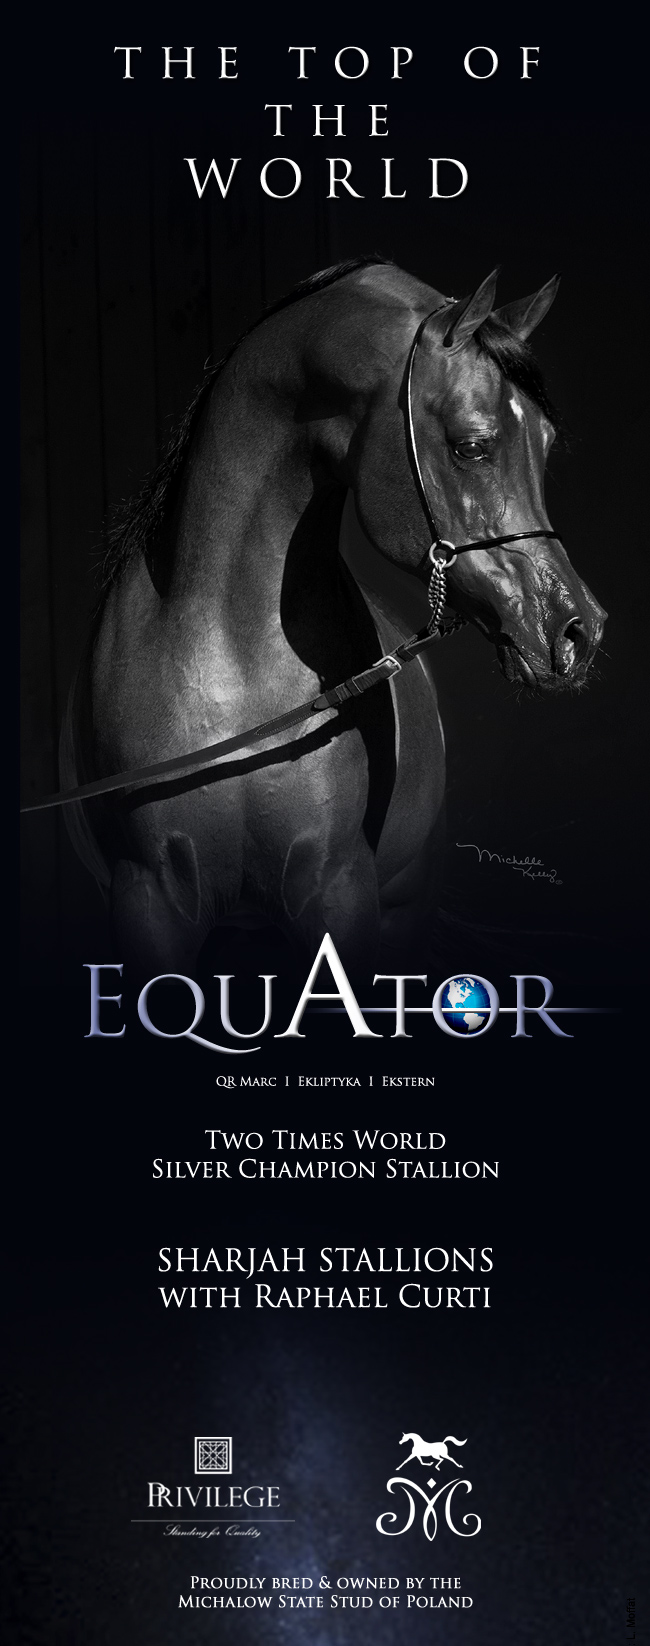 Equator - Sharjah 2018 - Senior Stallions With Mr. Raphael Curti